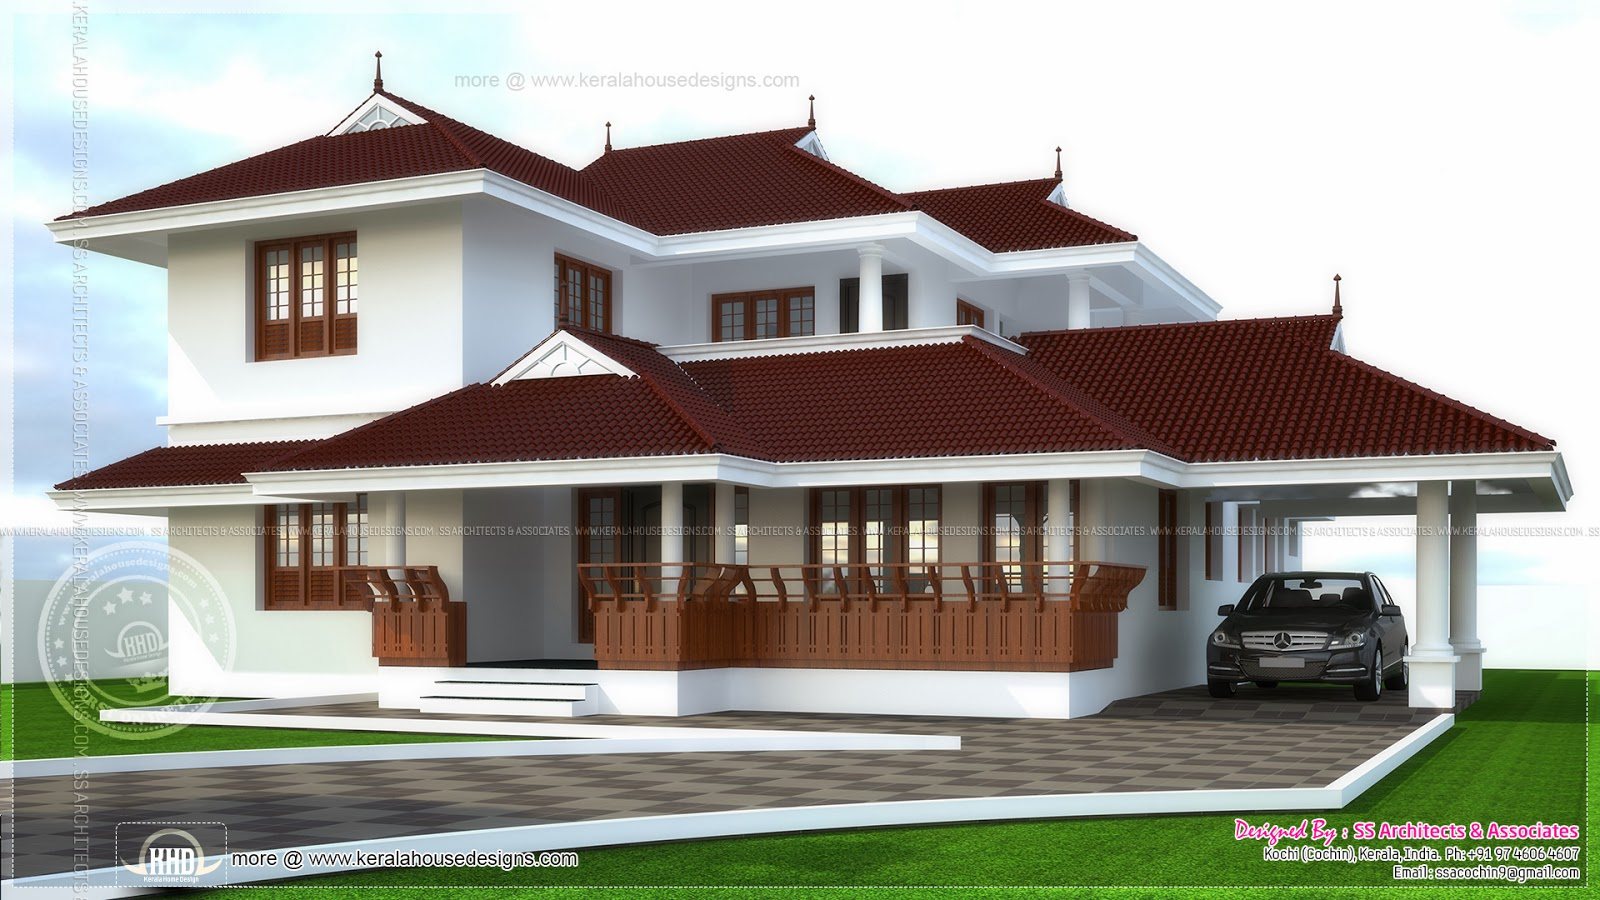 4 bedroom traditional kerala house design for Kerala traditional home plans